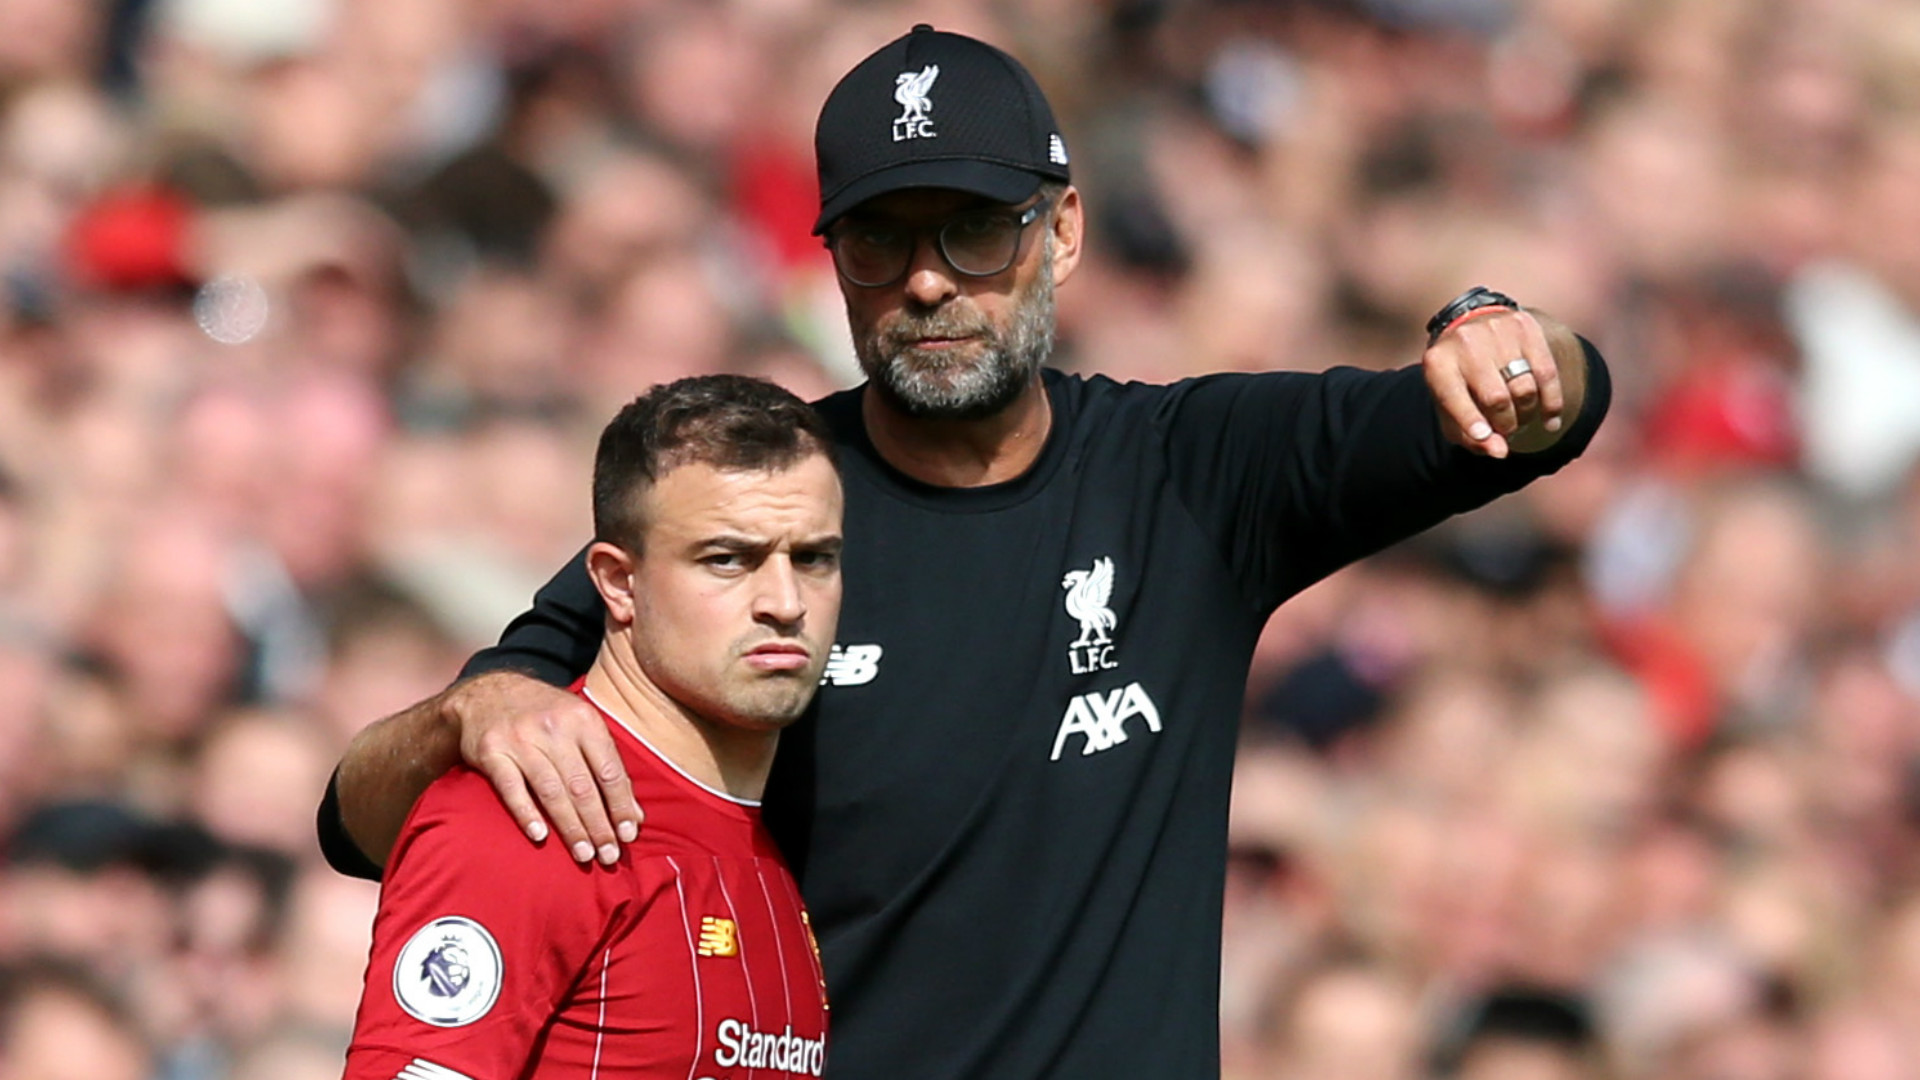 Shaqiri S Gifted But Klopp Can T Trust Him Crouch Explains Liverpool Absence Of Swiss Star Goal Com